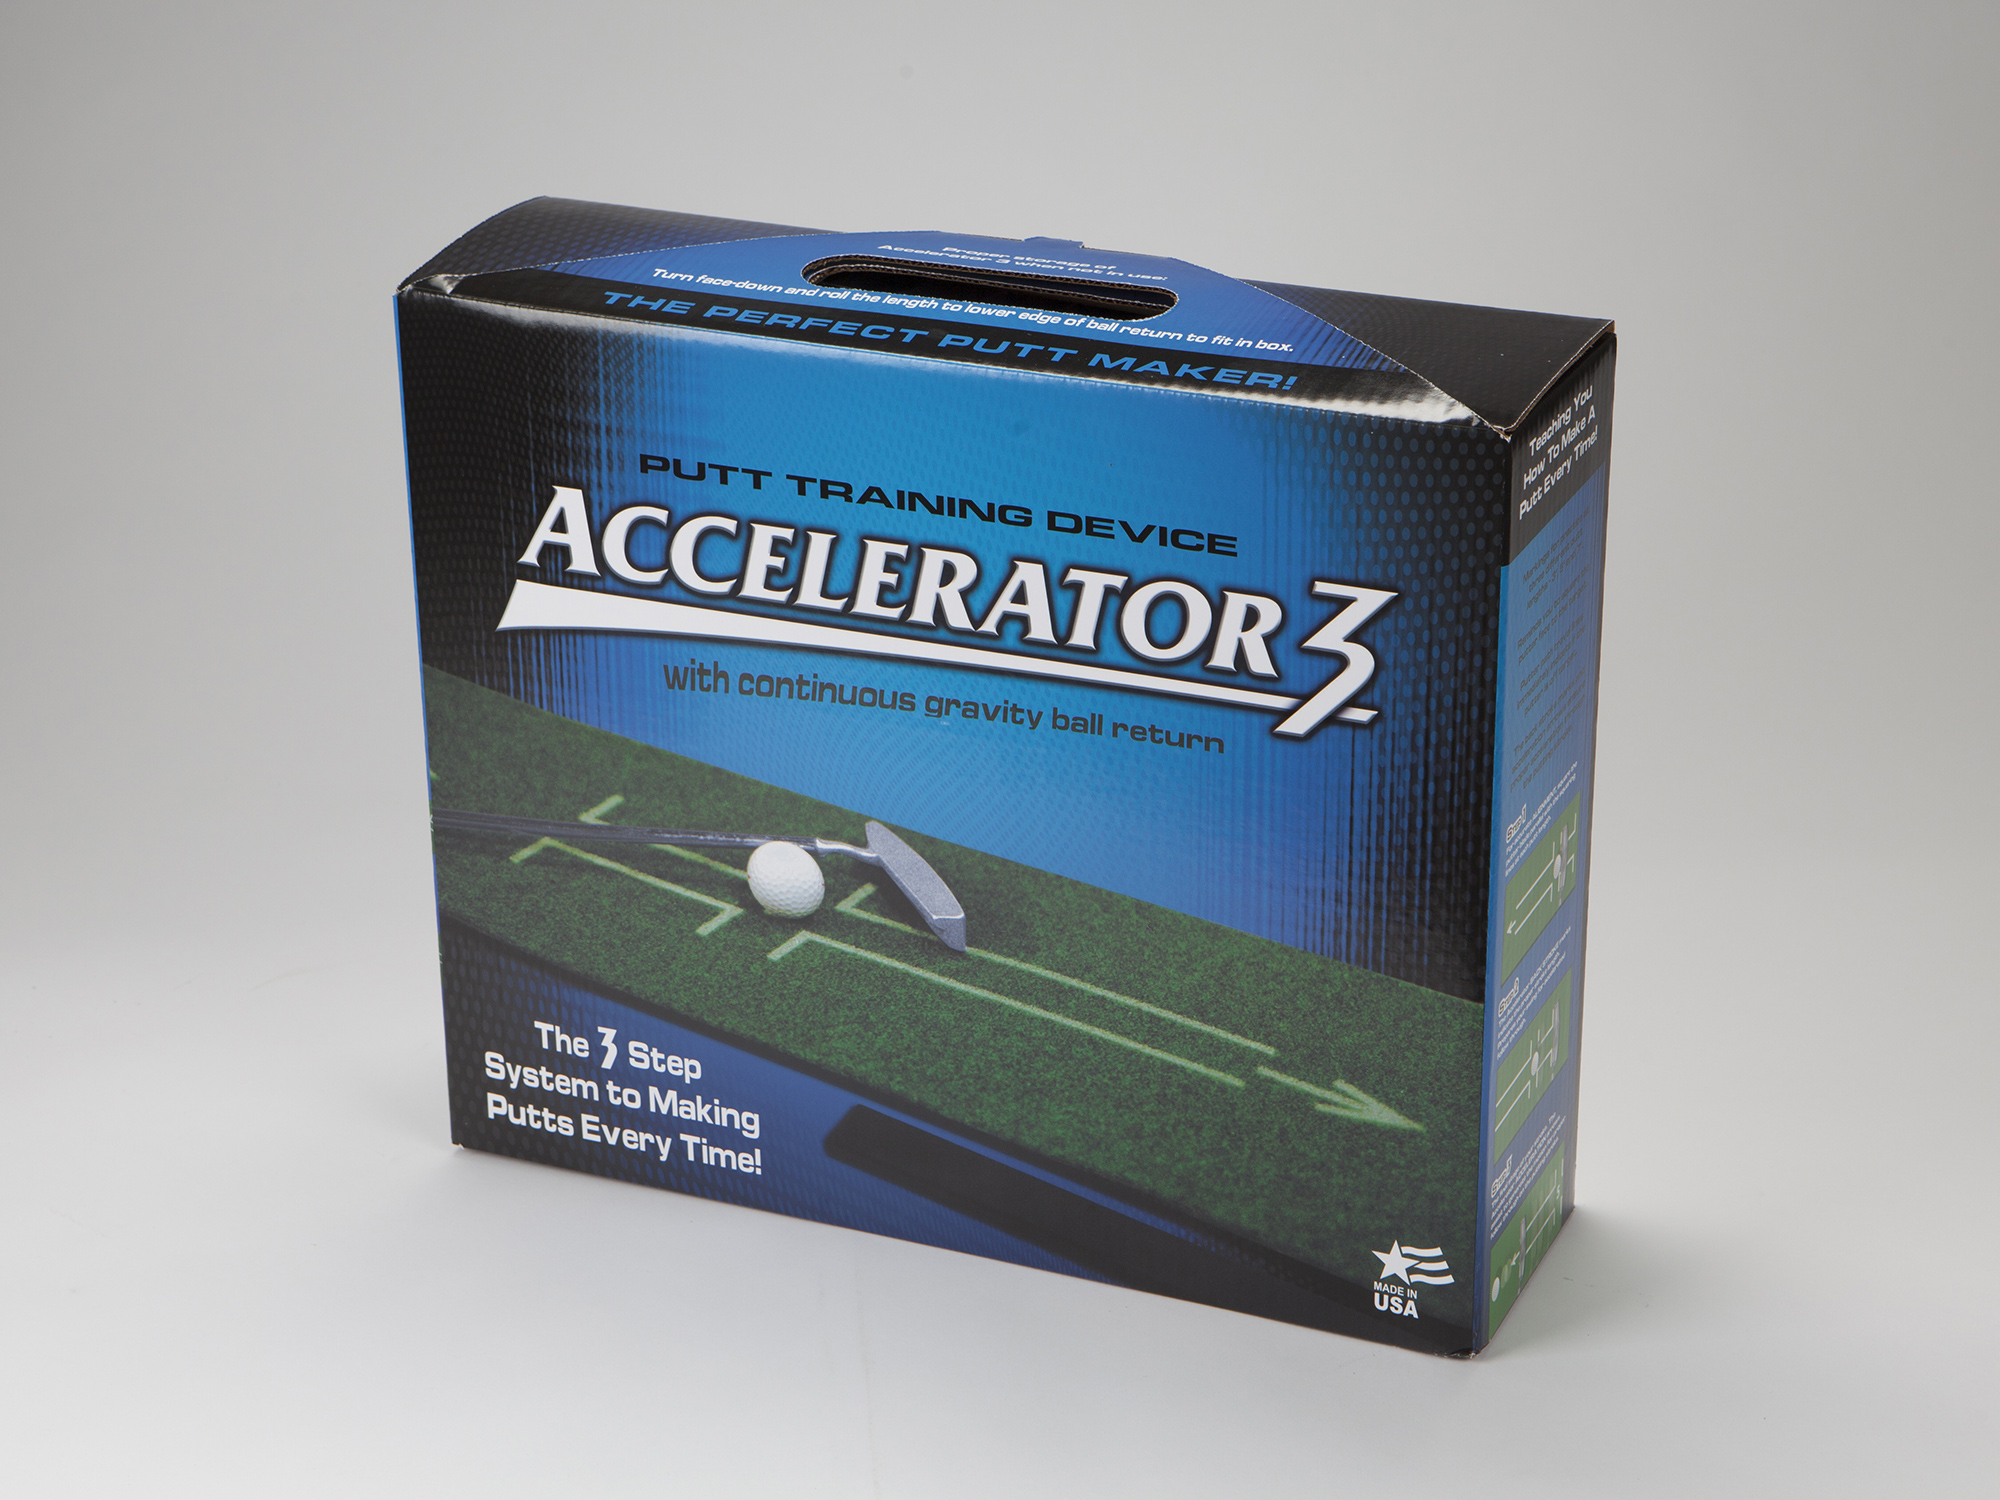 The original Accelerator